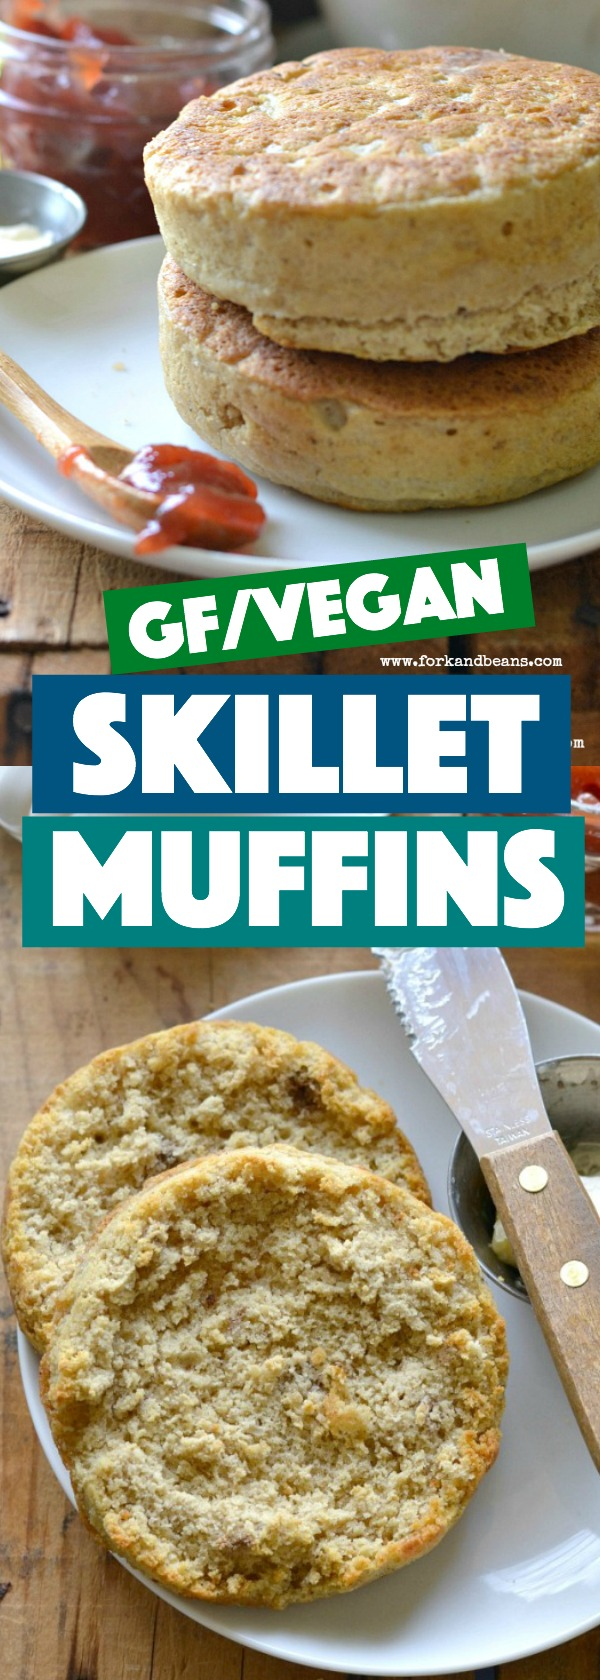 Just like toasty English muffins, these gluten free vegan Yeasted Skillet Muffins make a great breakfast option that can easily be whipped up on the stove.